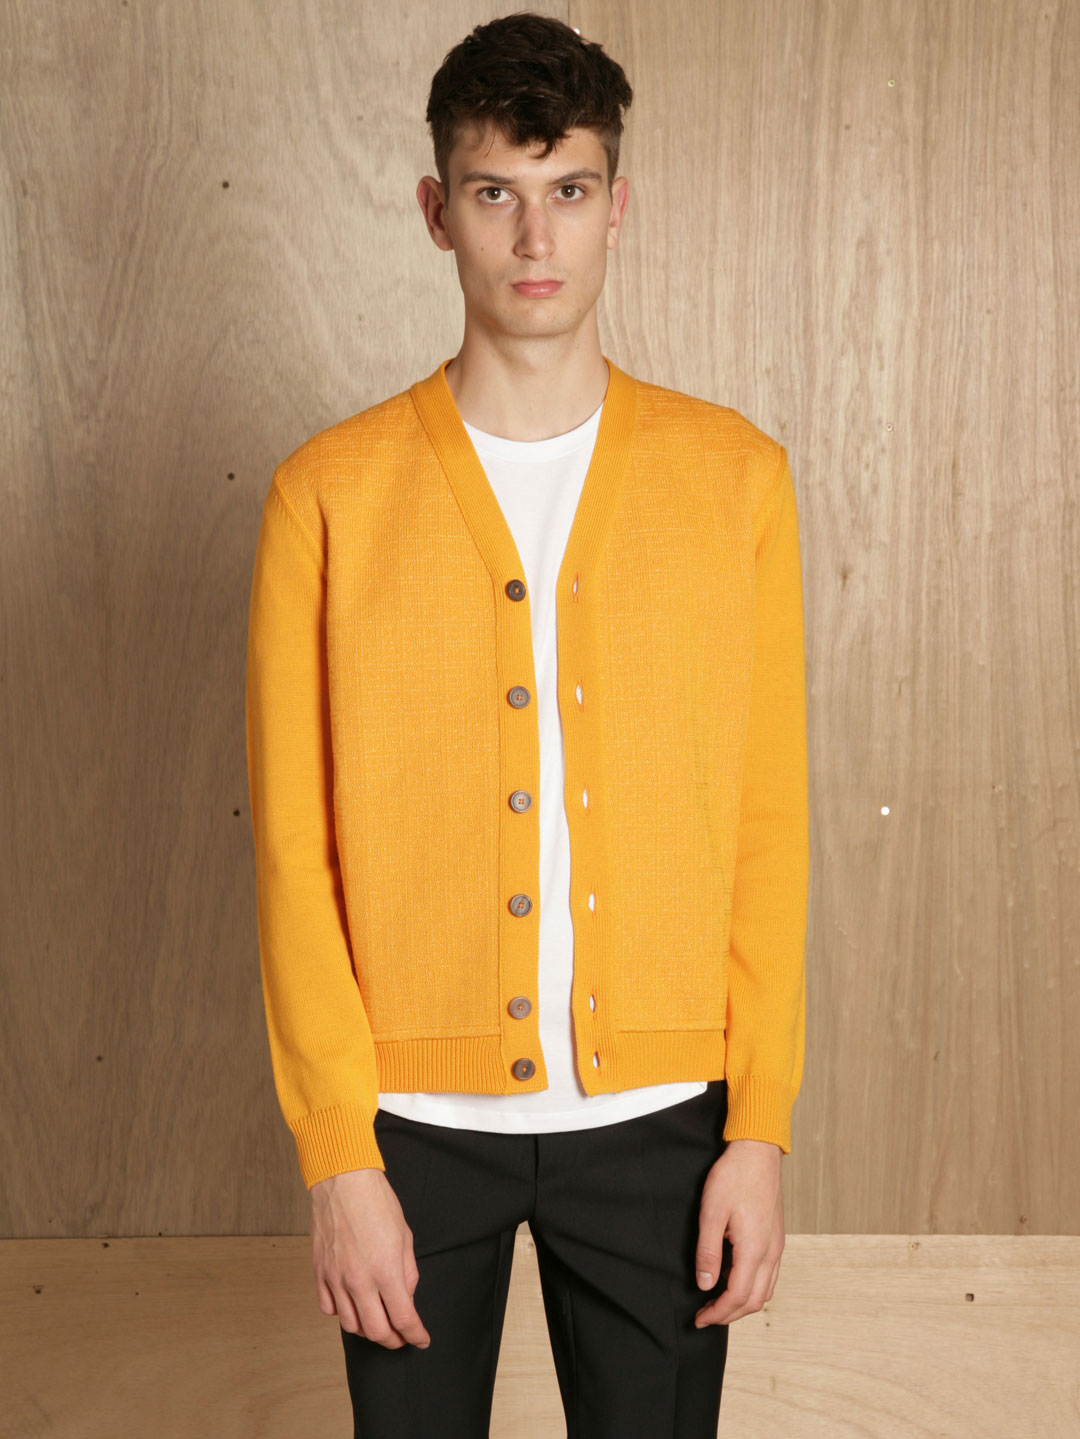 jil sander mens stitch cardigan in yellow for men lyst. Black Bedroom Furniture Sets. Home Design Ideas